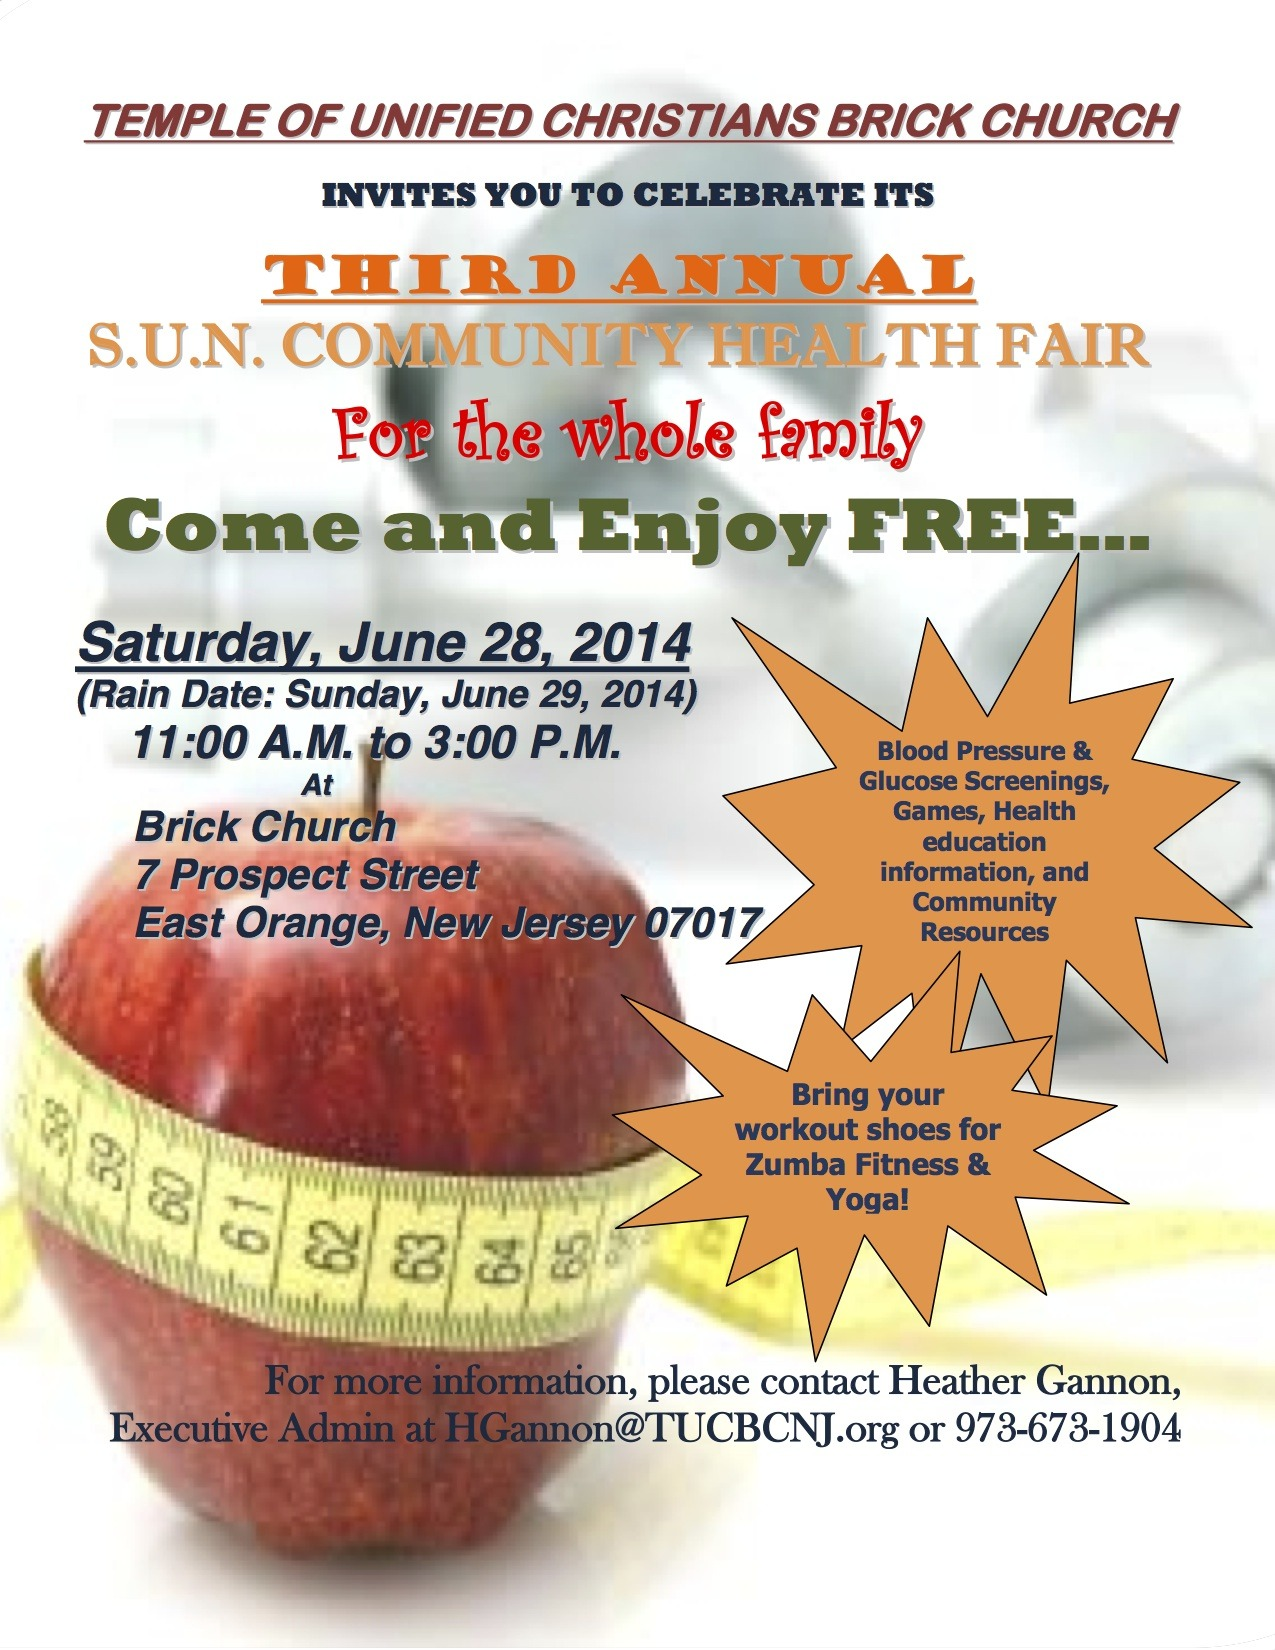 827cbc5303f0a8727e9f_2014_Health_Fair_Flyer_copy.jpg